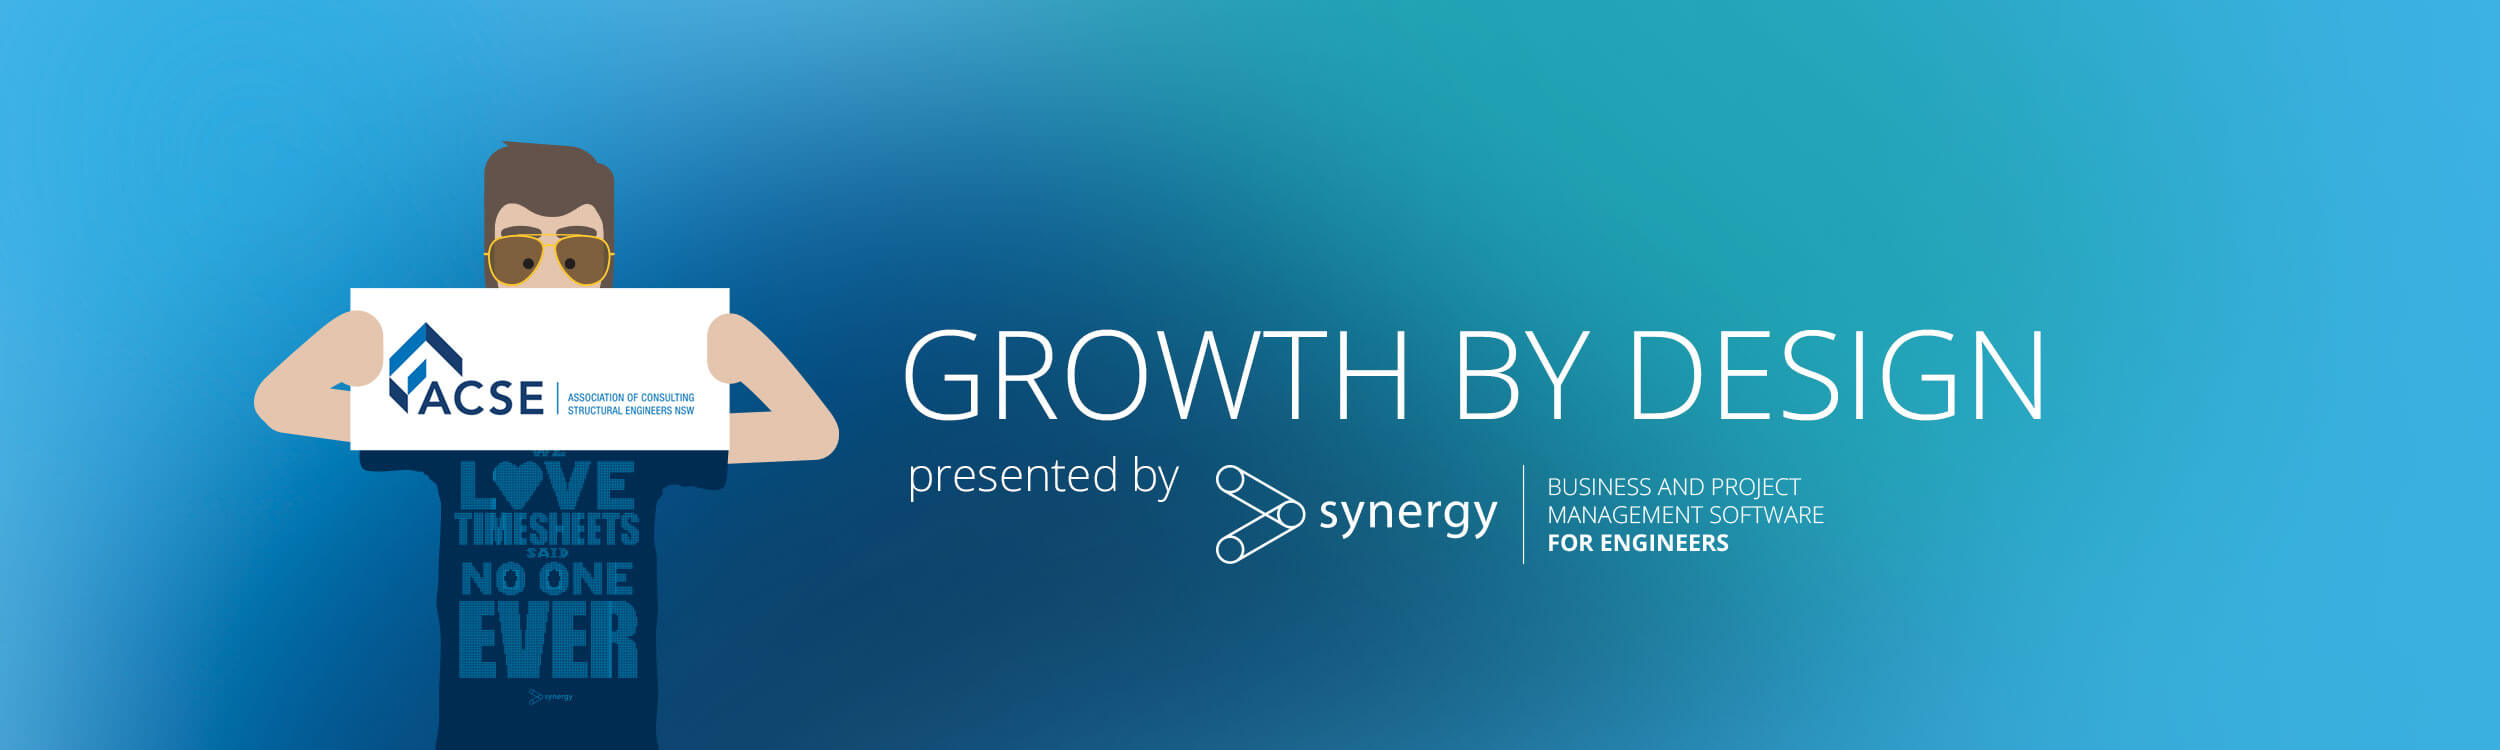 Total Synergy welcomes ACSE members to its Growth by Design event.